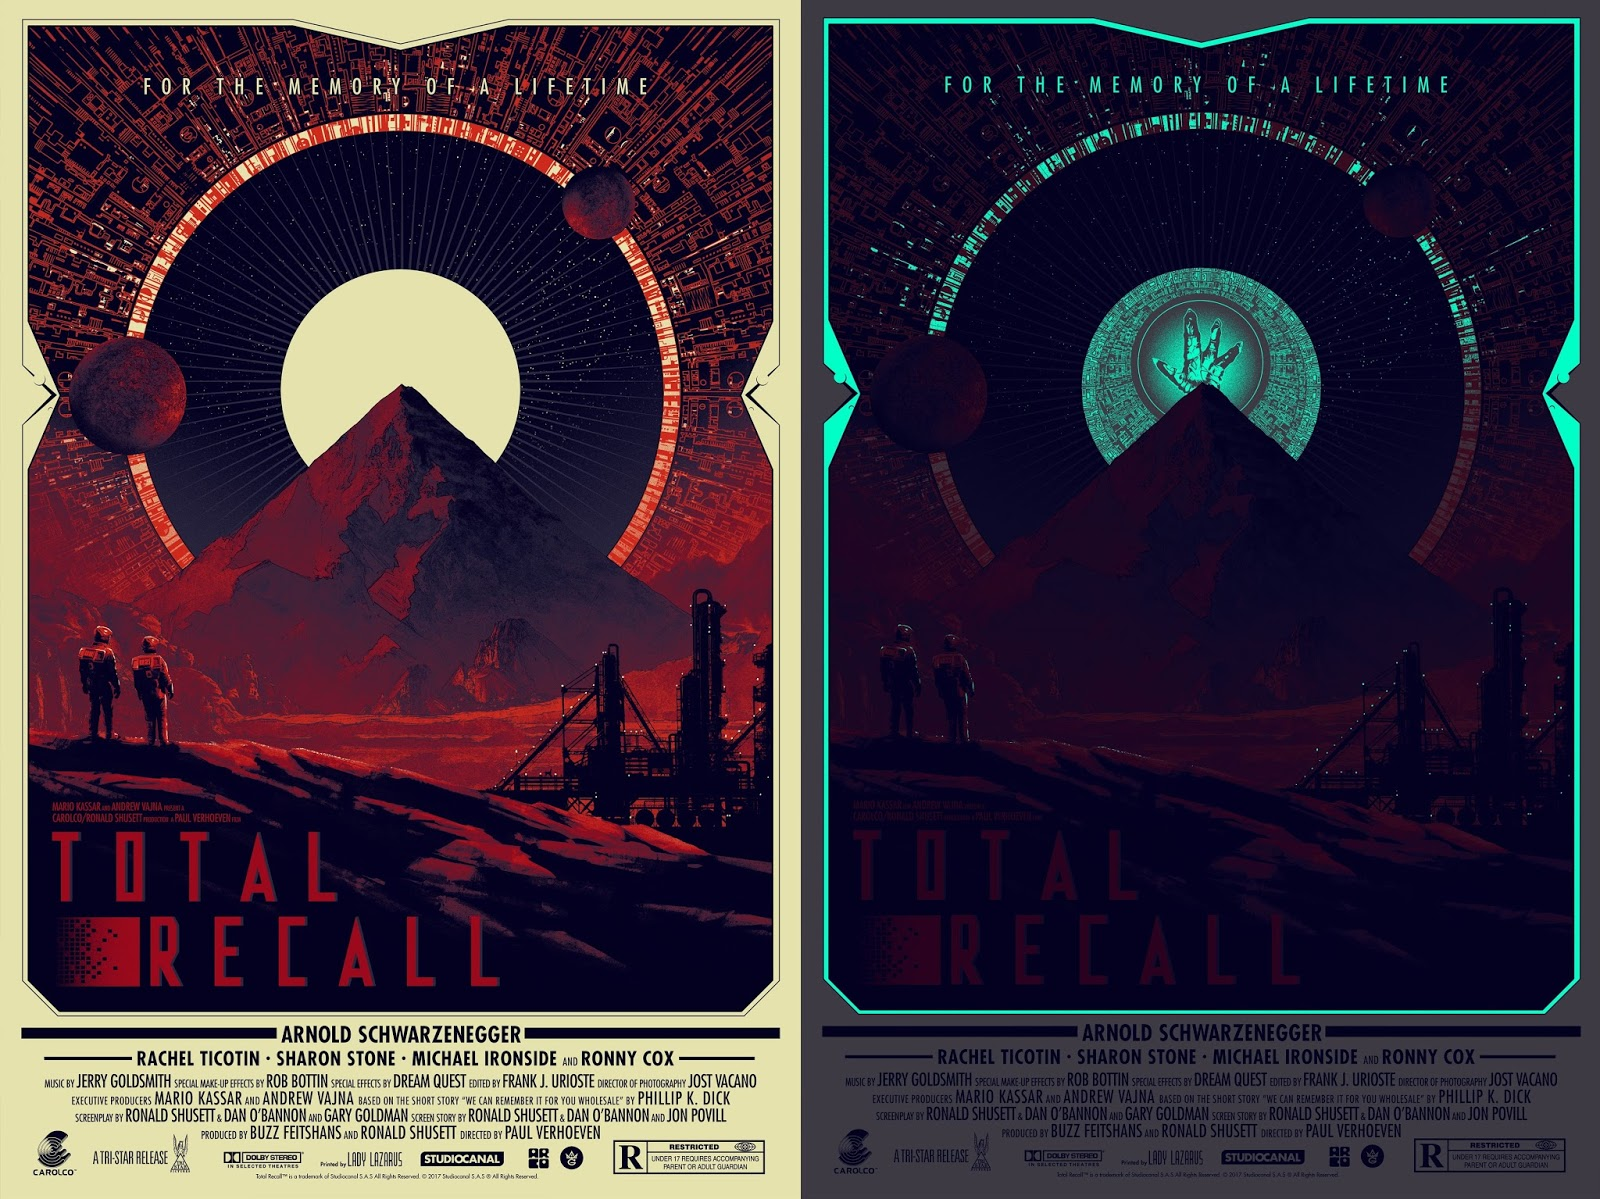 the blot says total recall movie poster screen print